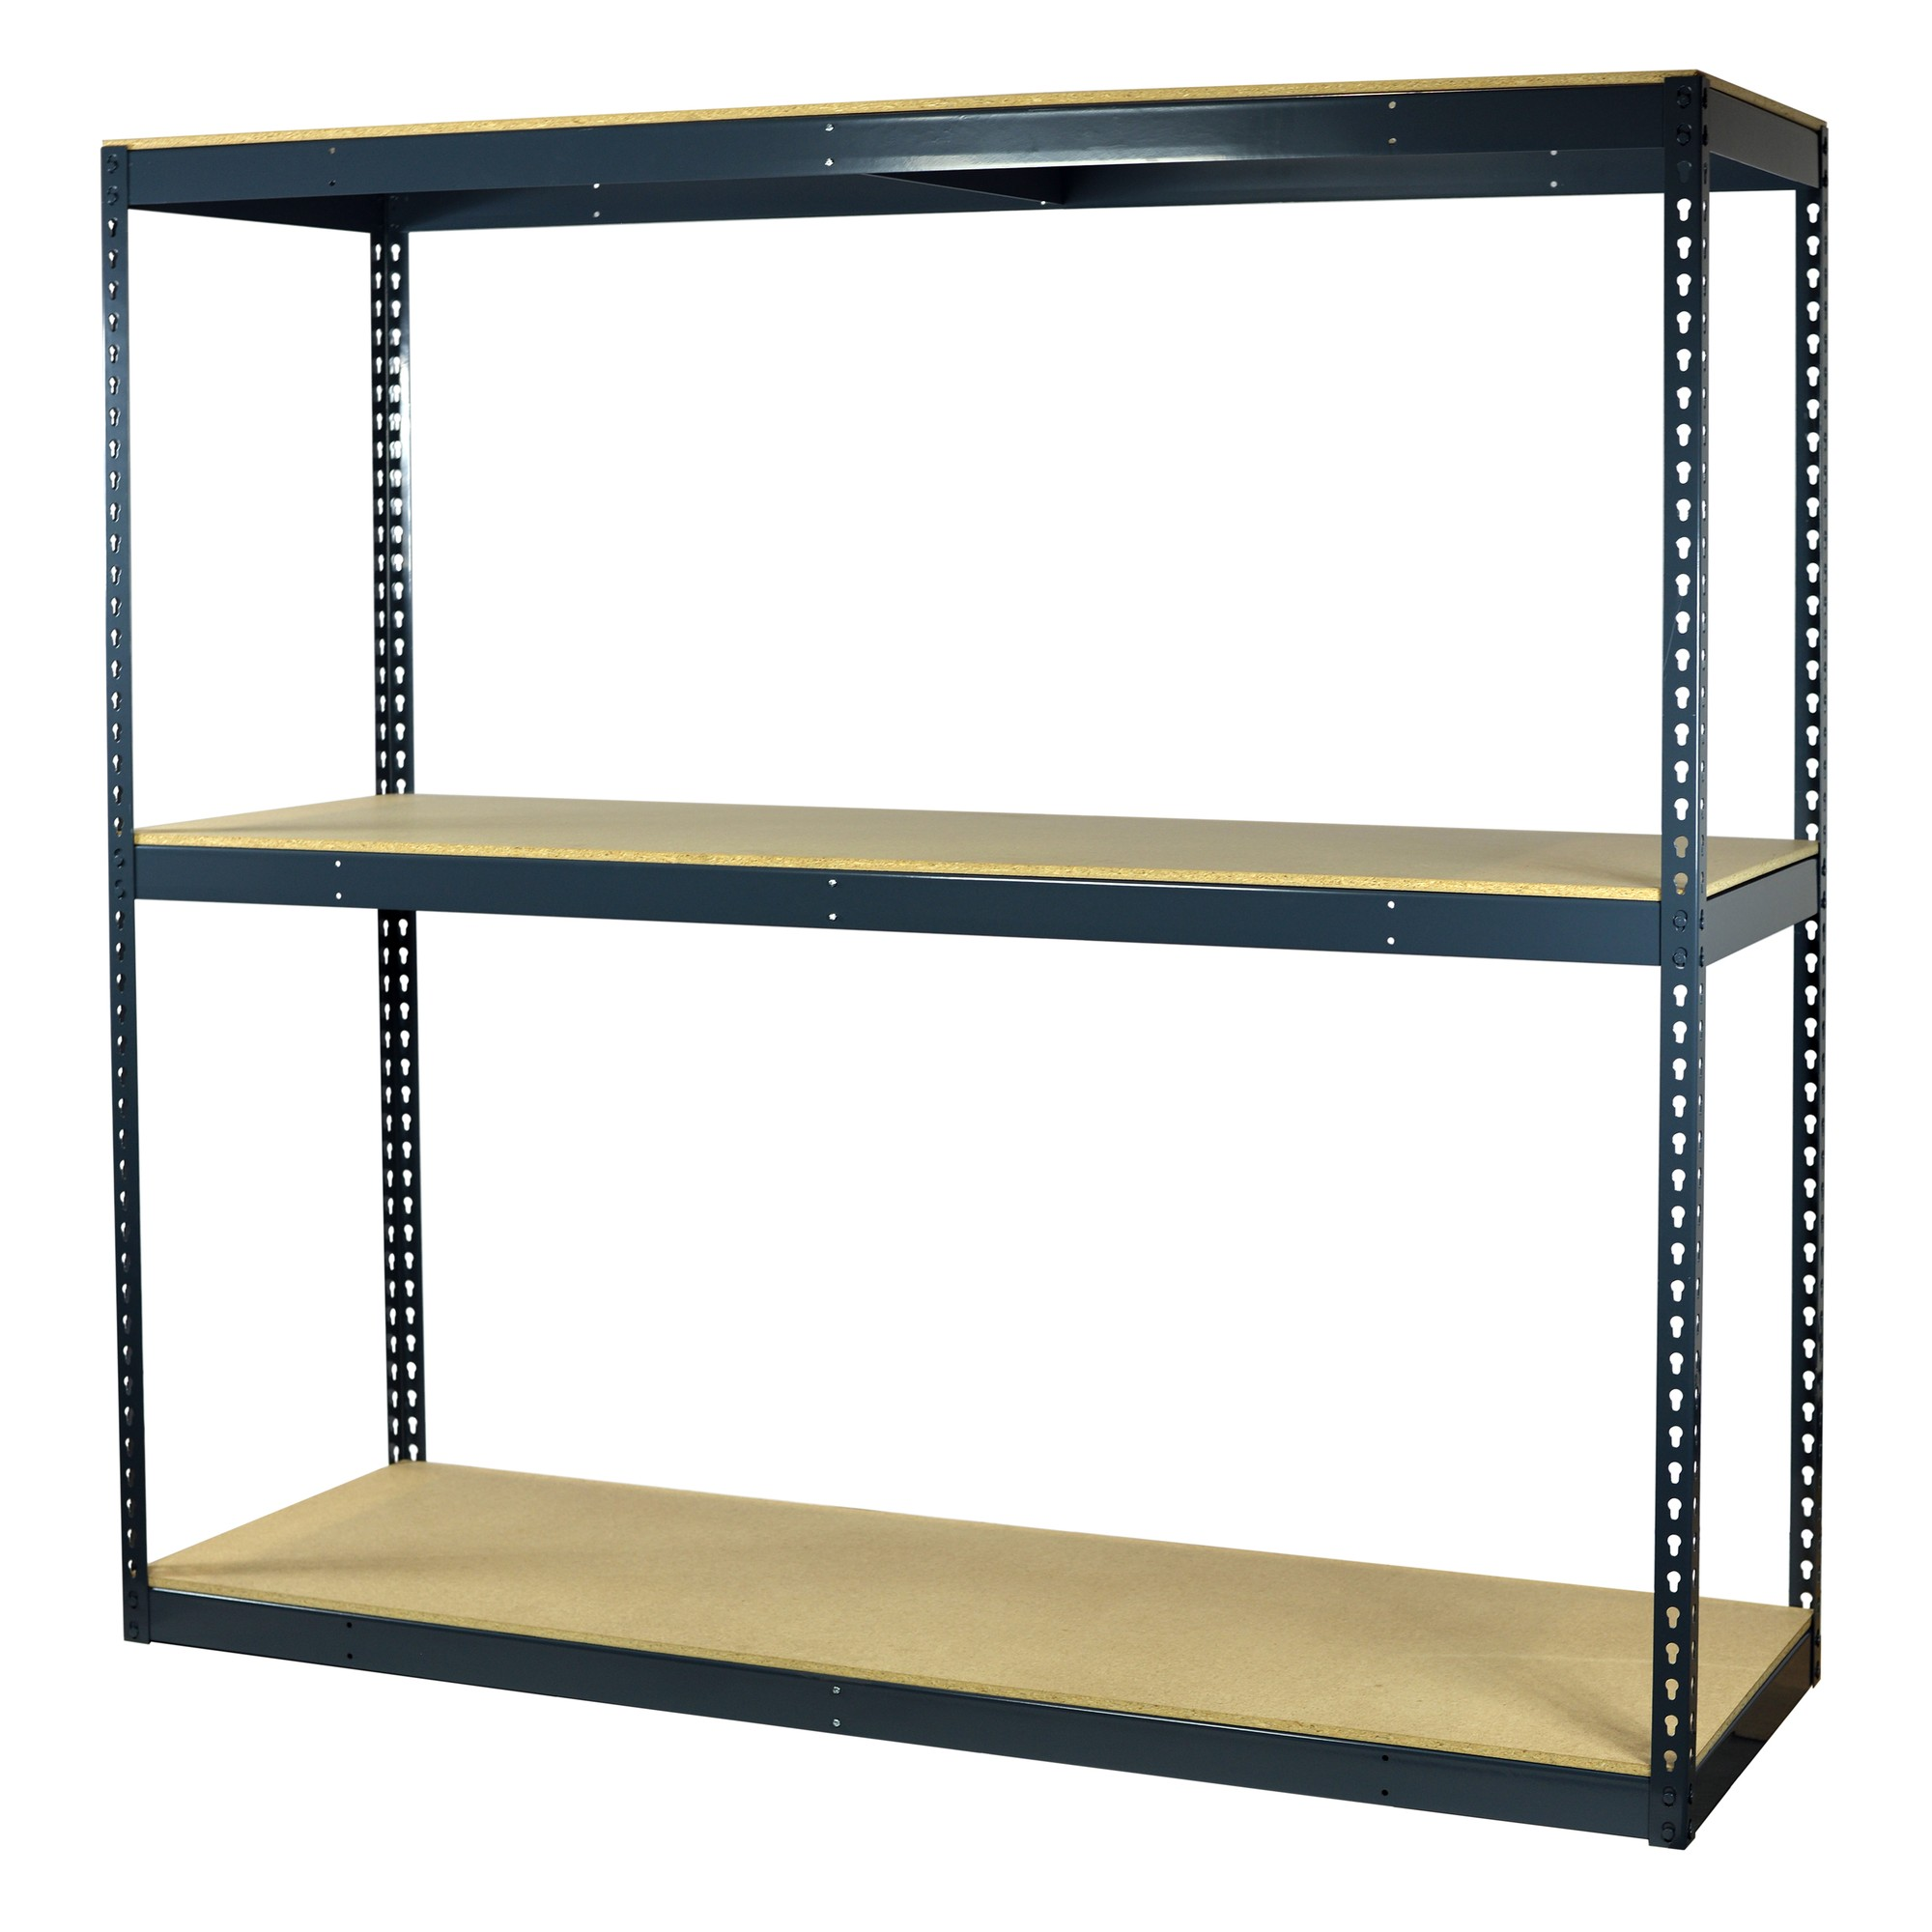 Storage Max Garage Shelving Boltless, 60 x 30 x 72, Heavy Duty, Double Rivet Beams, 3 Shelves